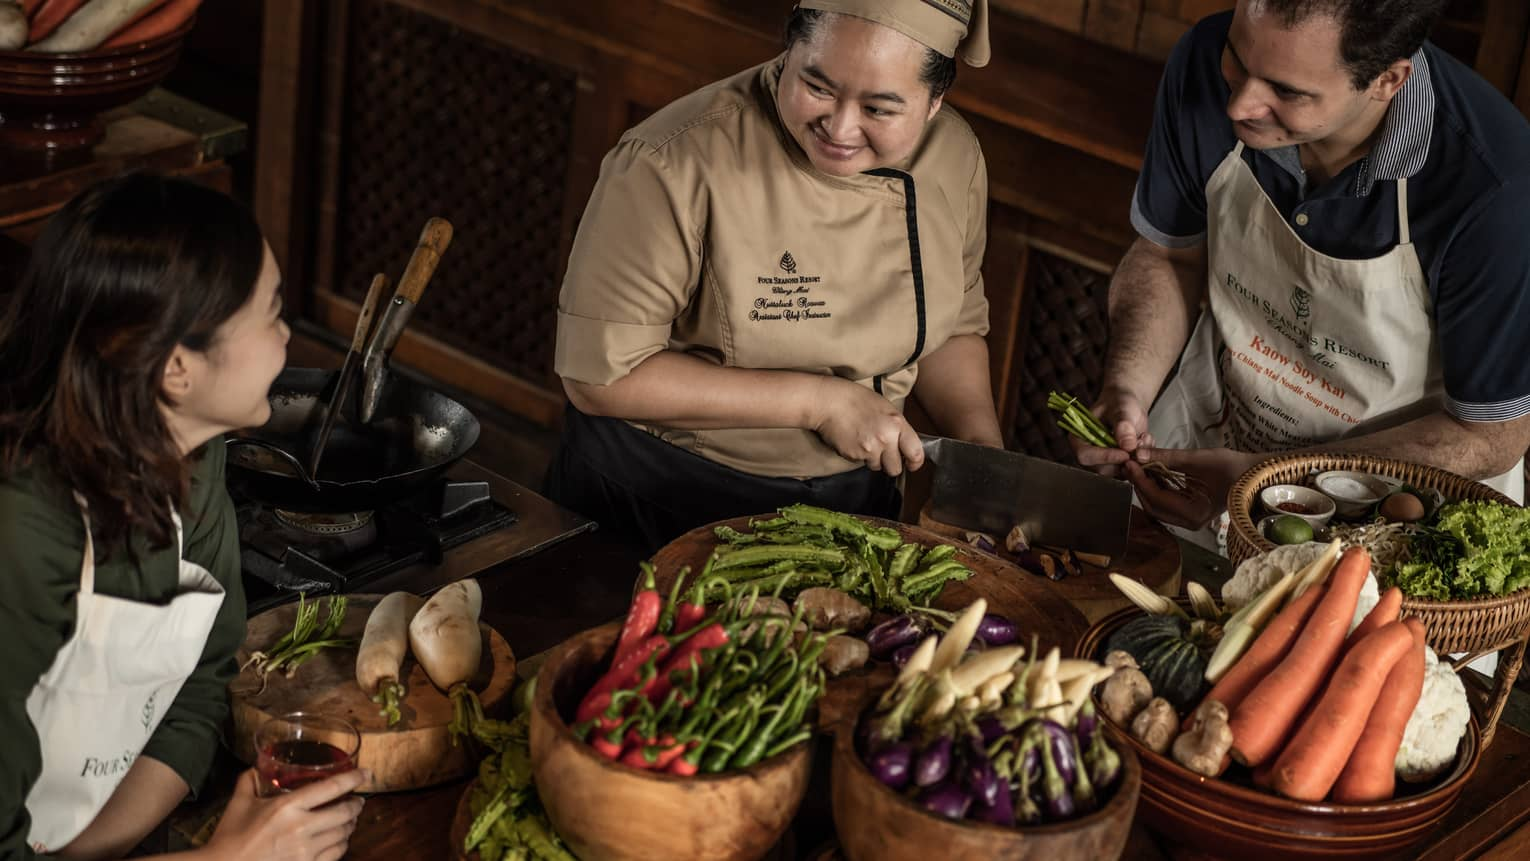 Chef chops mushrooms in front of couple, bamboo baskets with vegetables